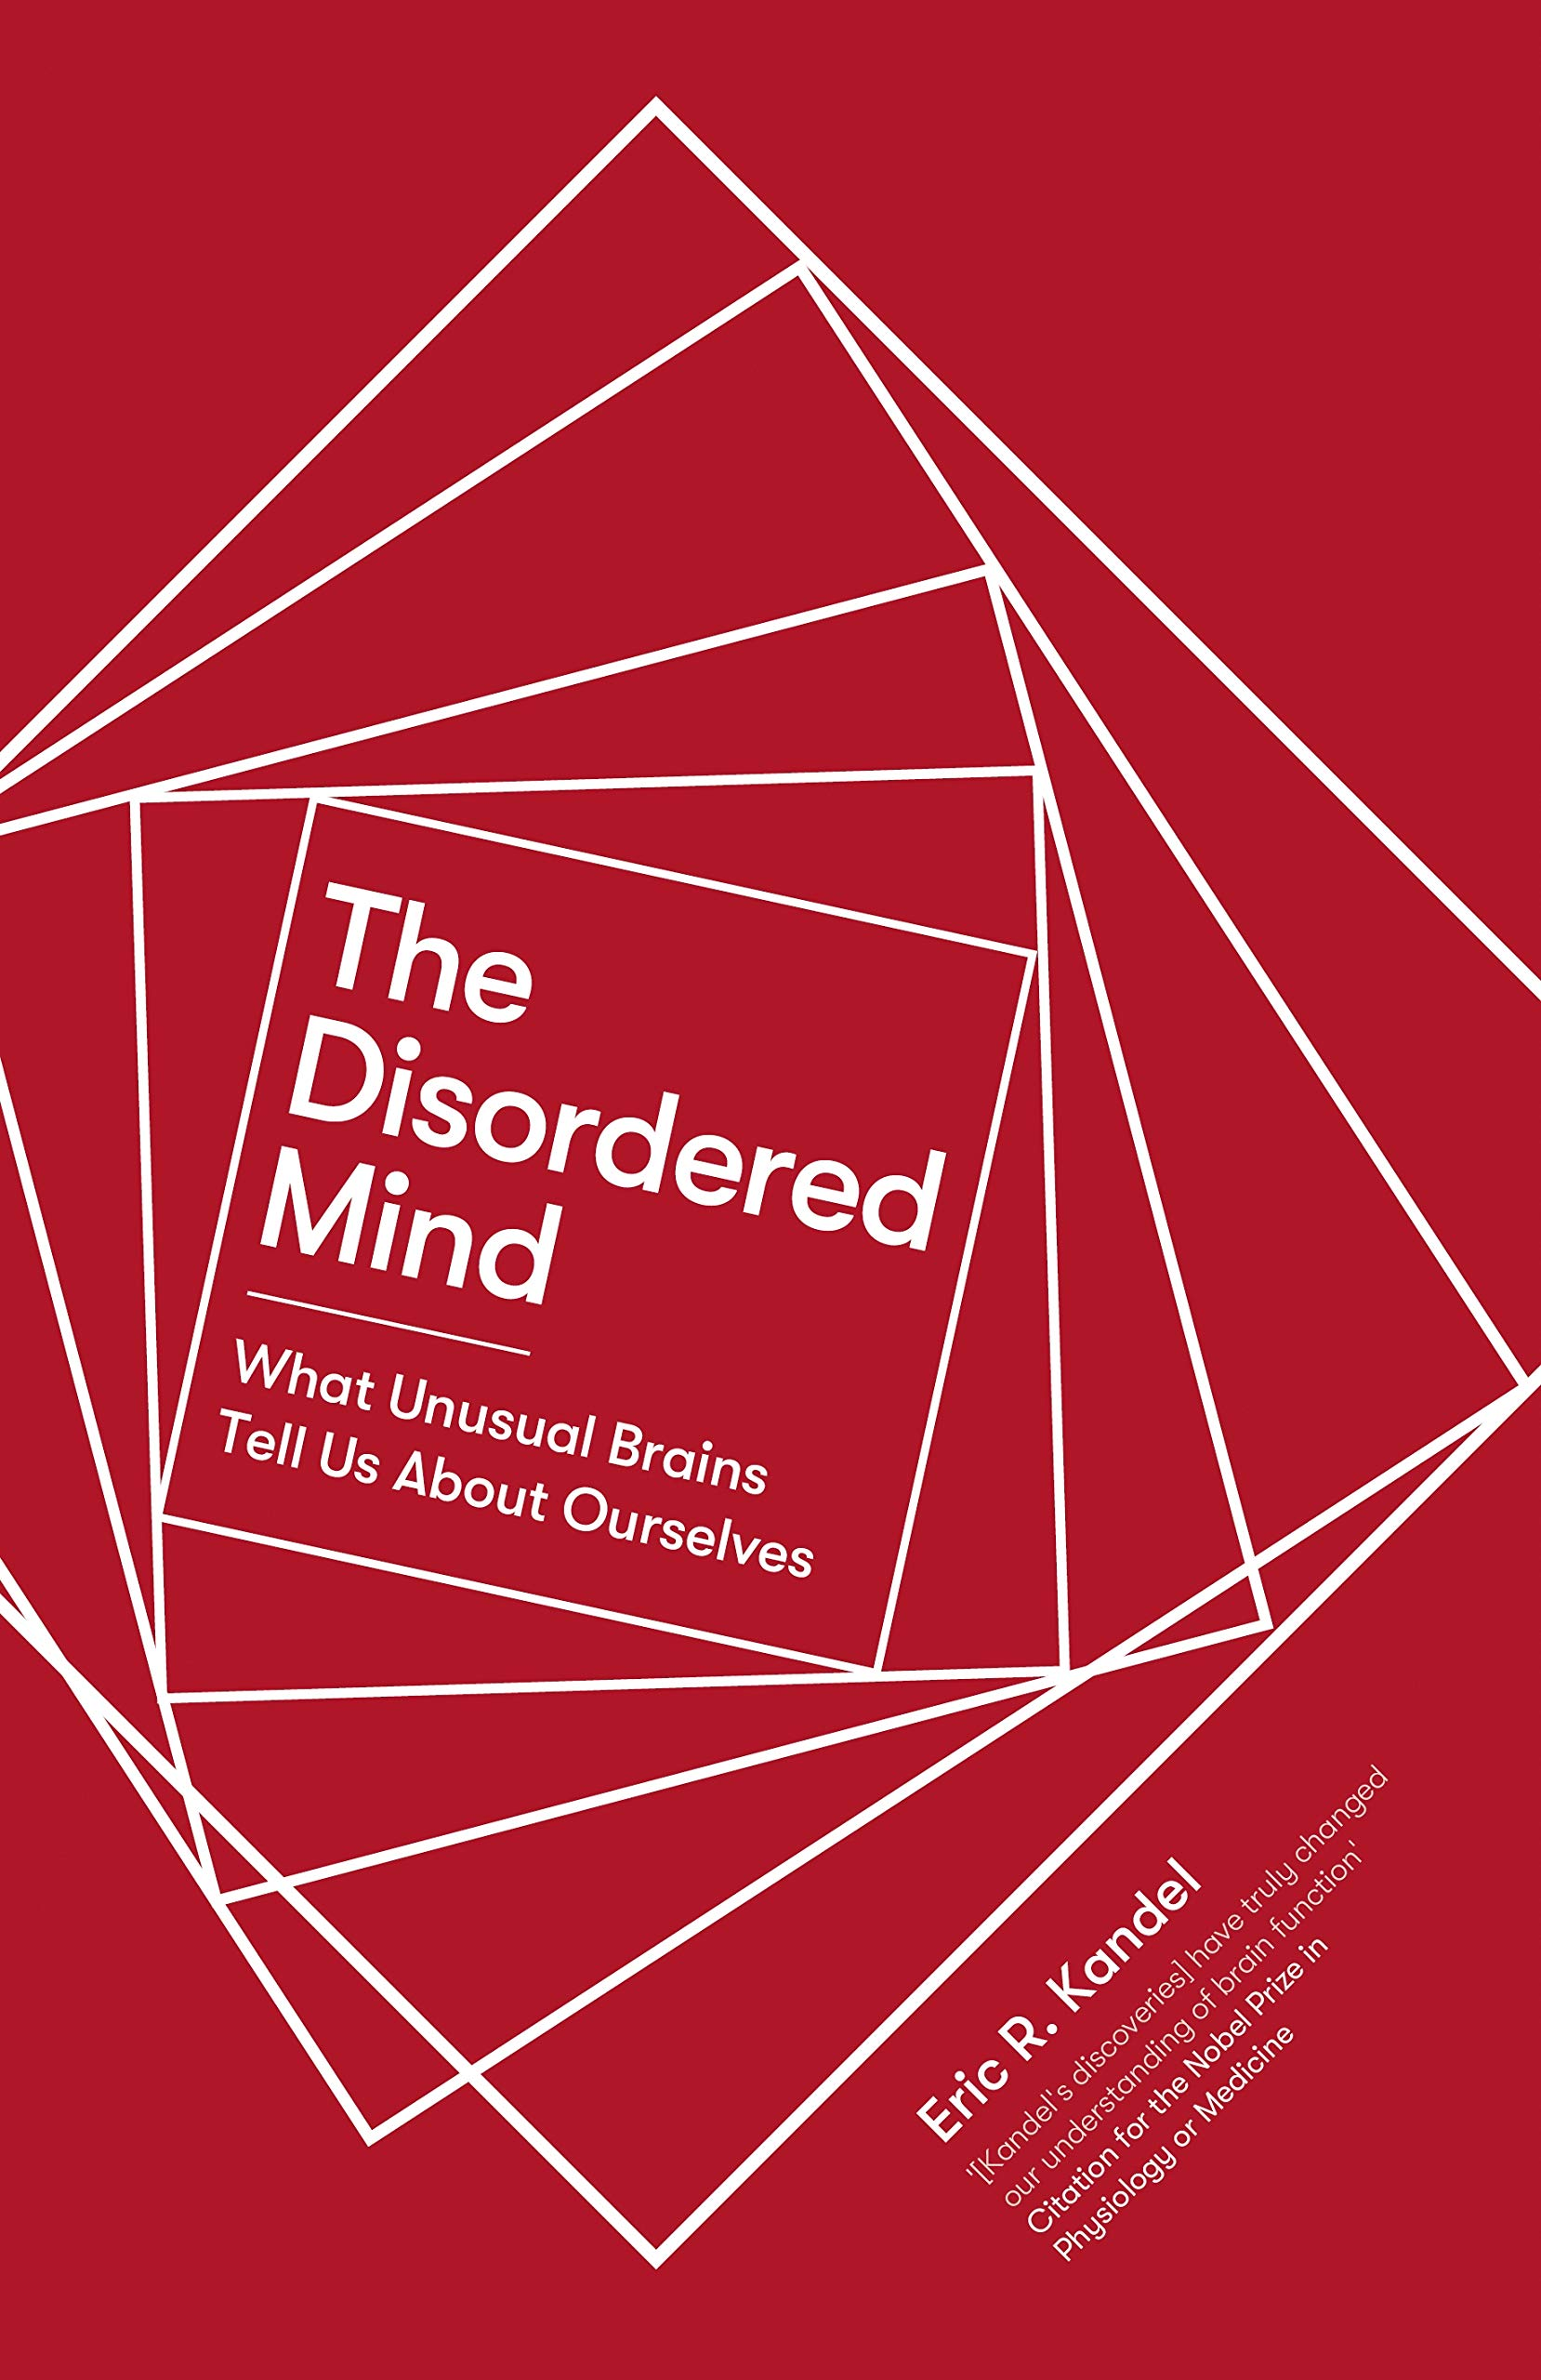 The Disordered Mind thumbnail